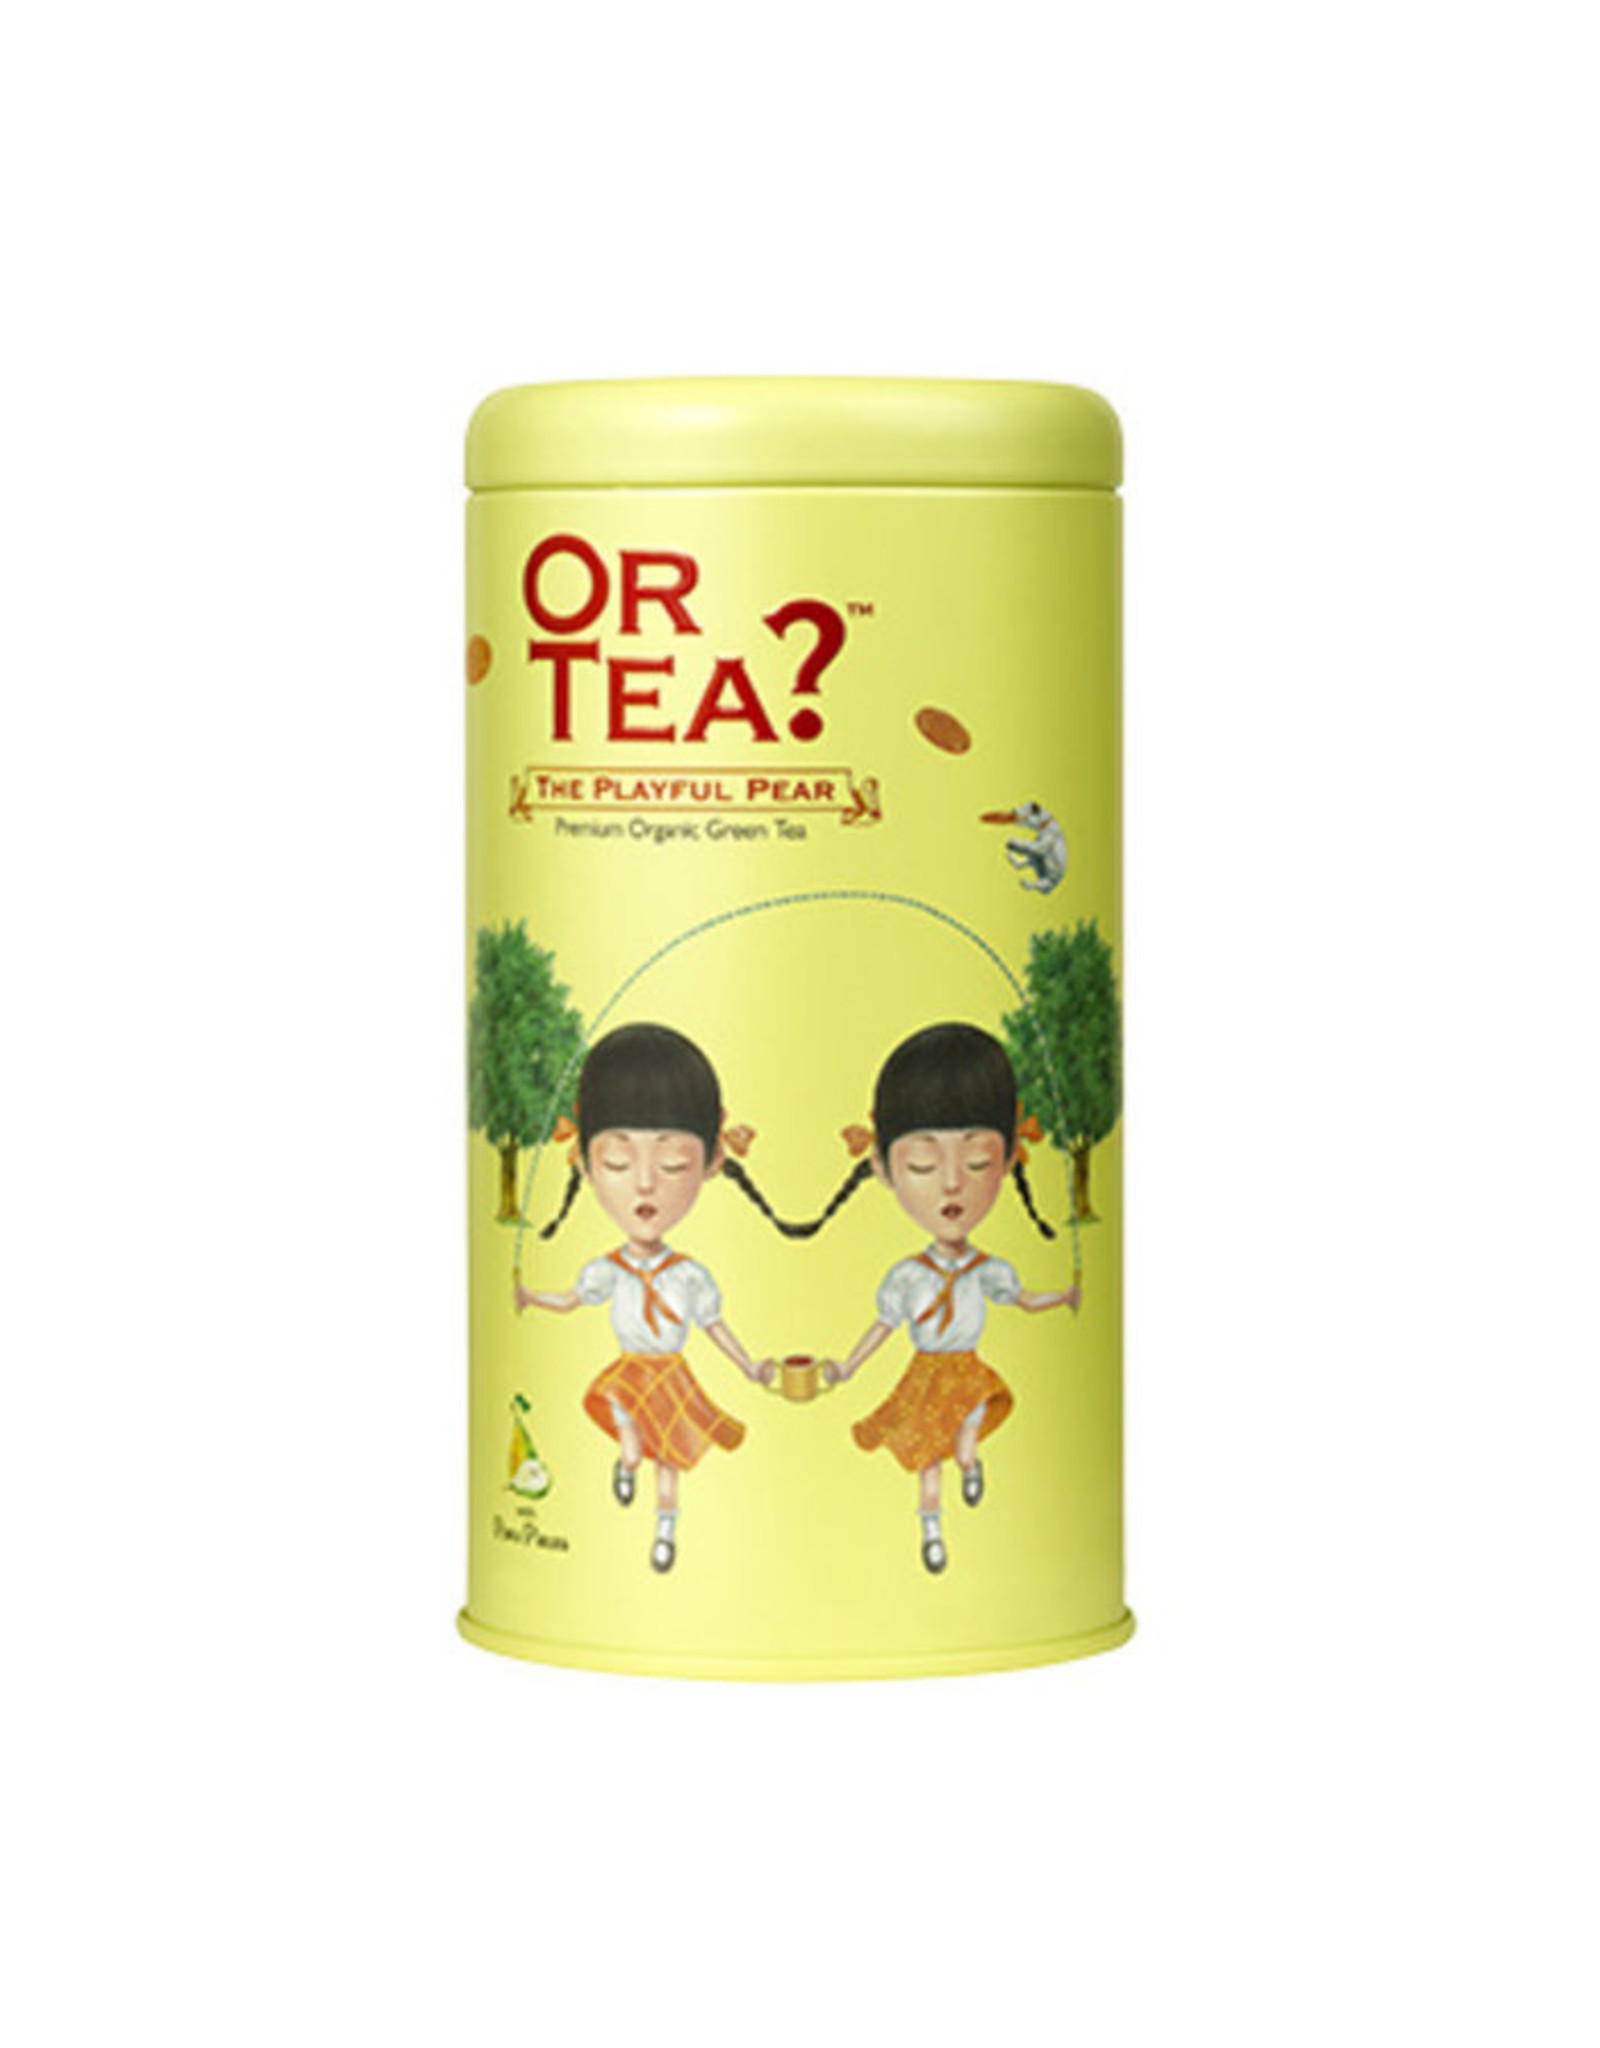 Or Tea? Organic The Playful Pear - Tin Canister